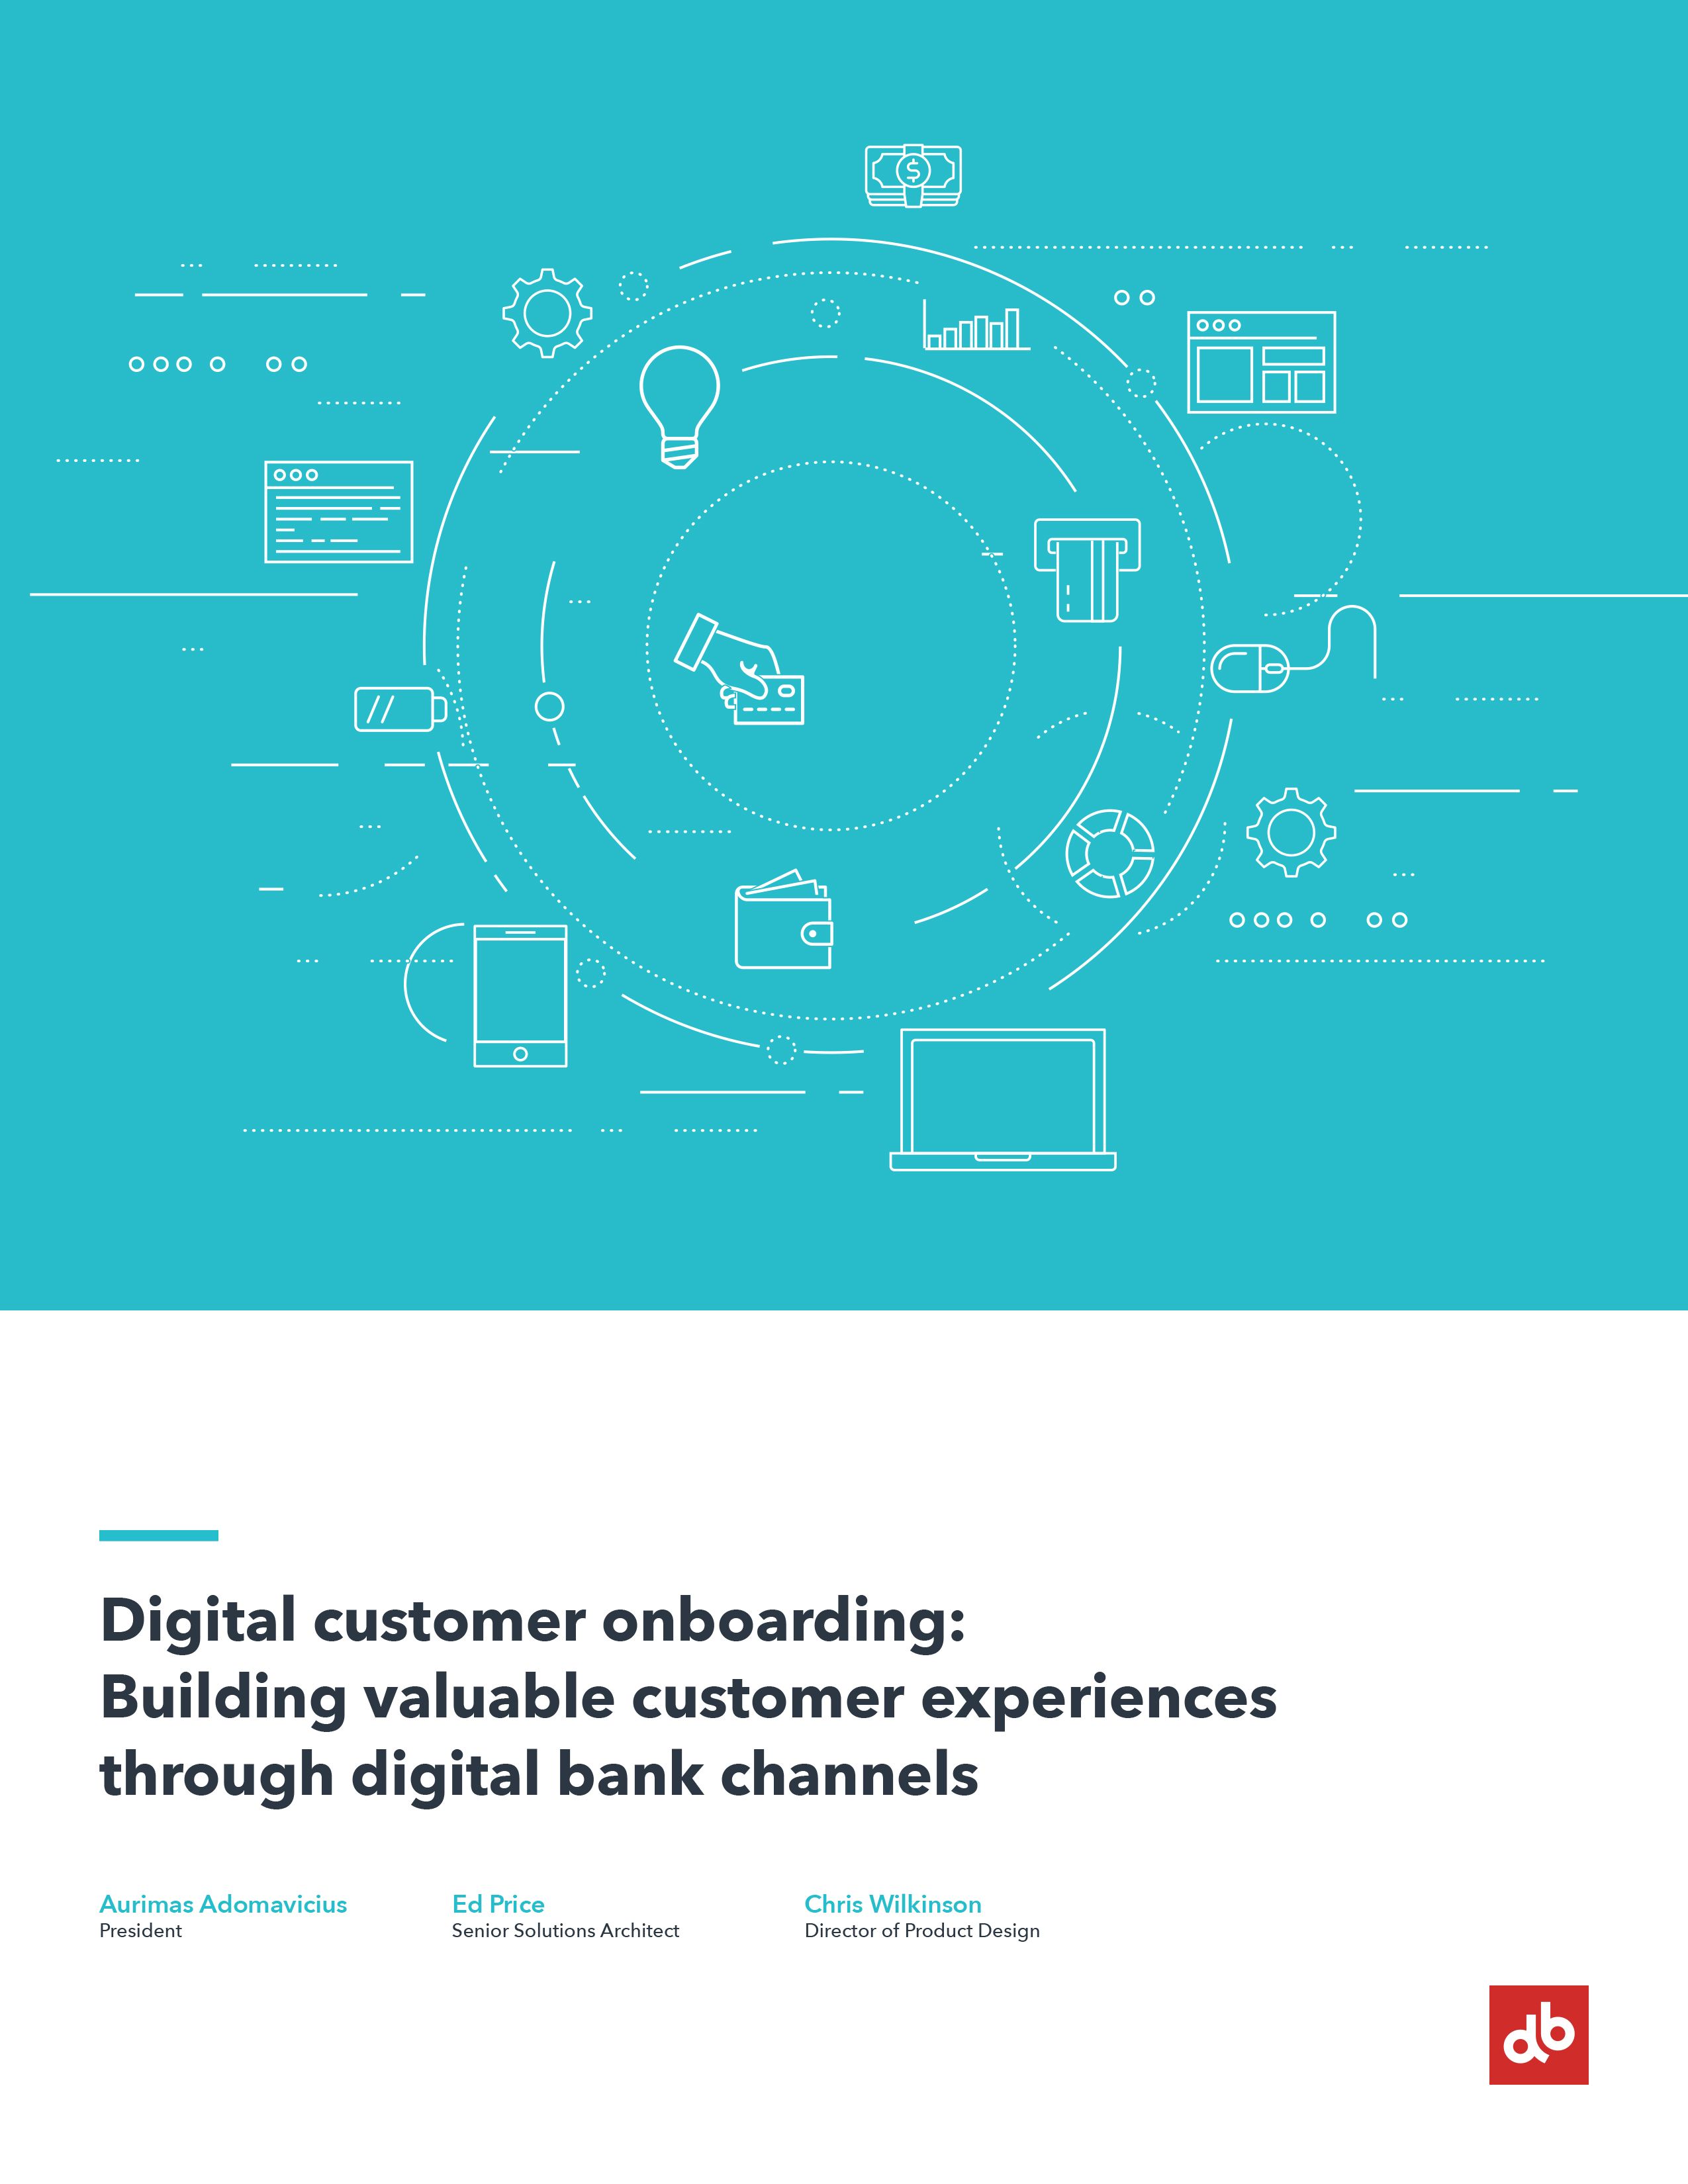 Digital customer onboarding: Building valuable customer experiences through digital banking channels